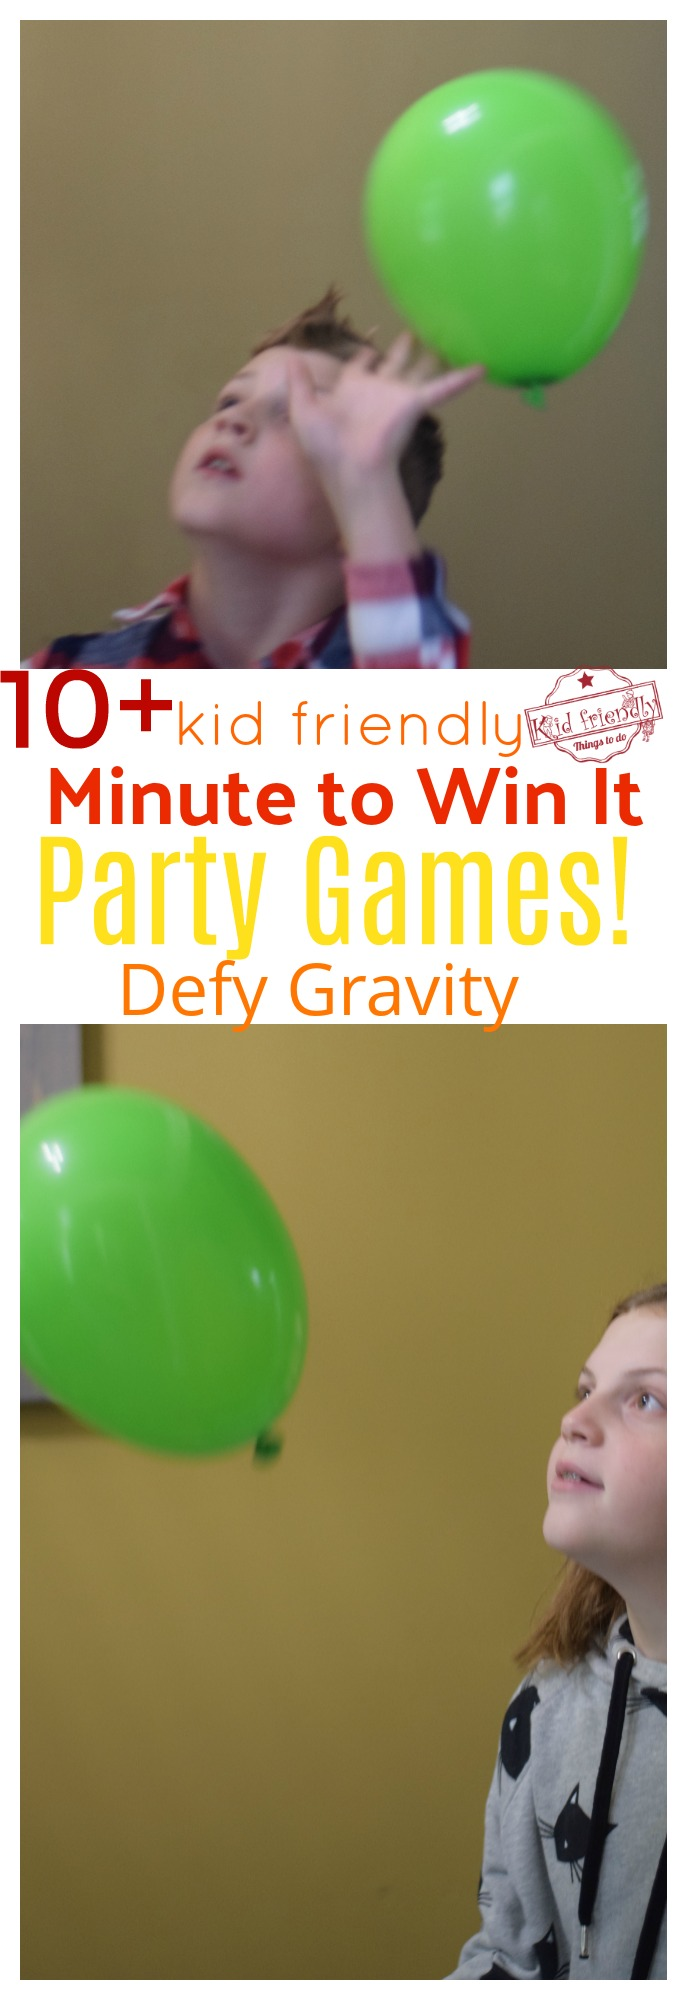 defy gravity a minute to win it party game